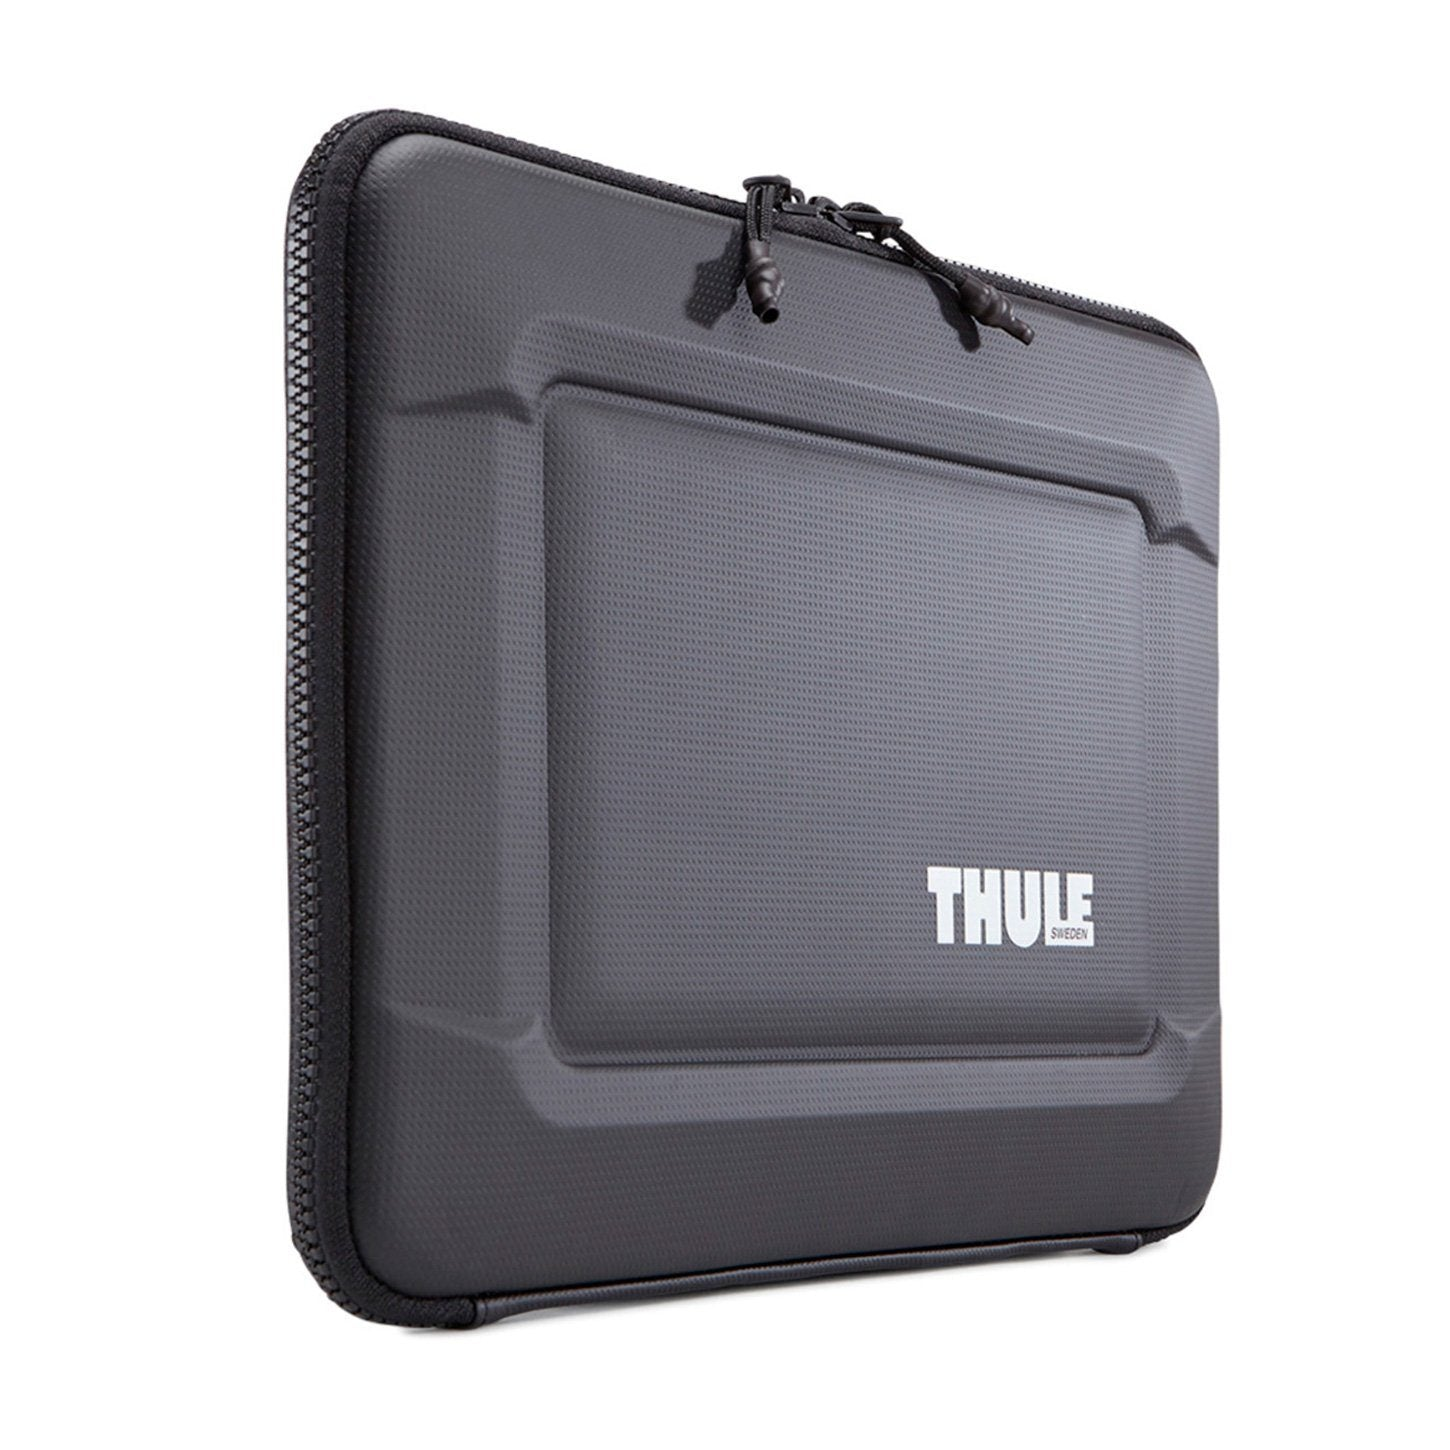 Thule Gauntlet 3.0 Funda para Notebook de hasta 13